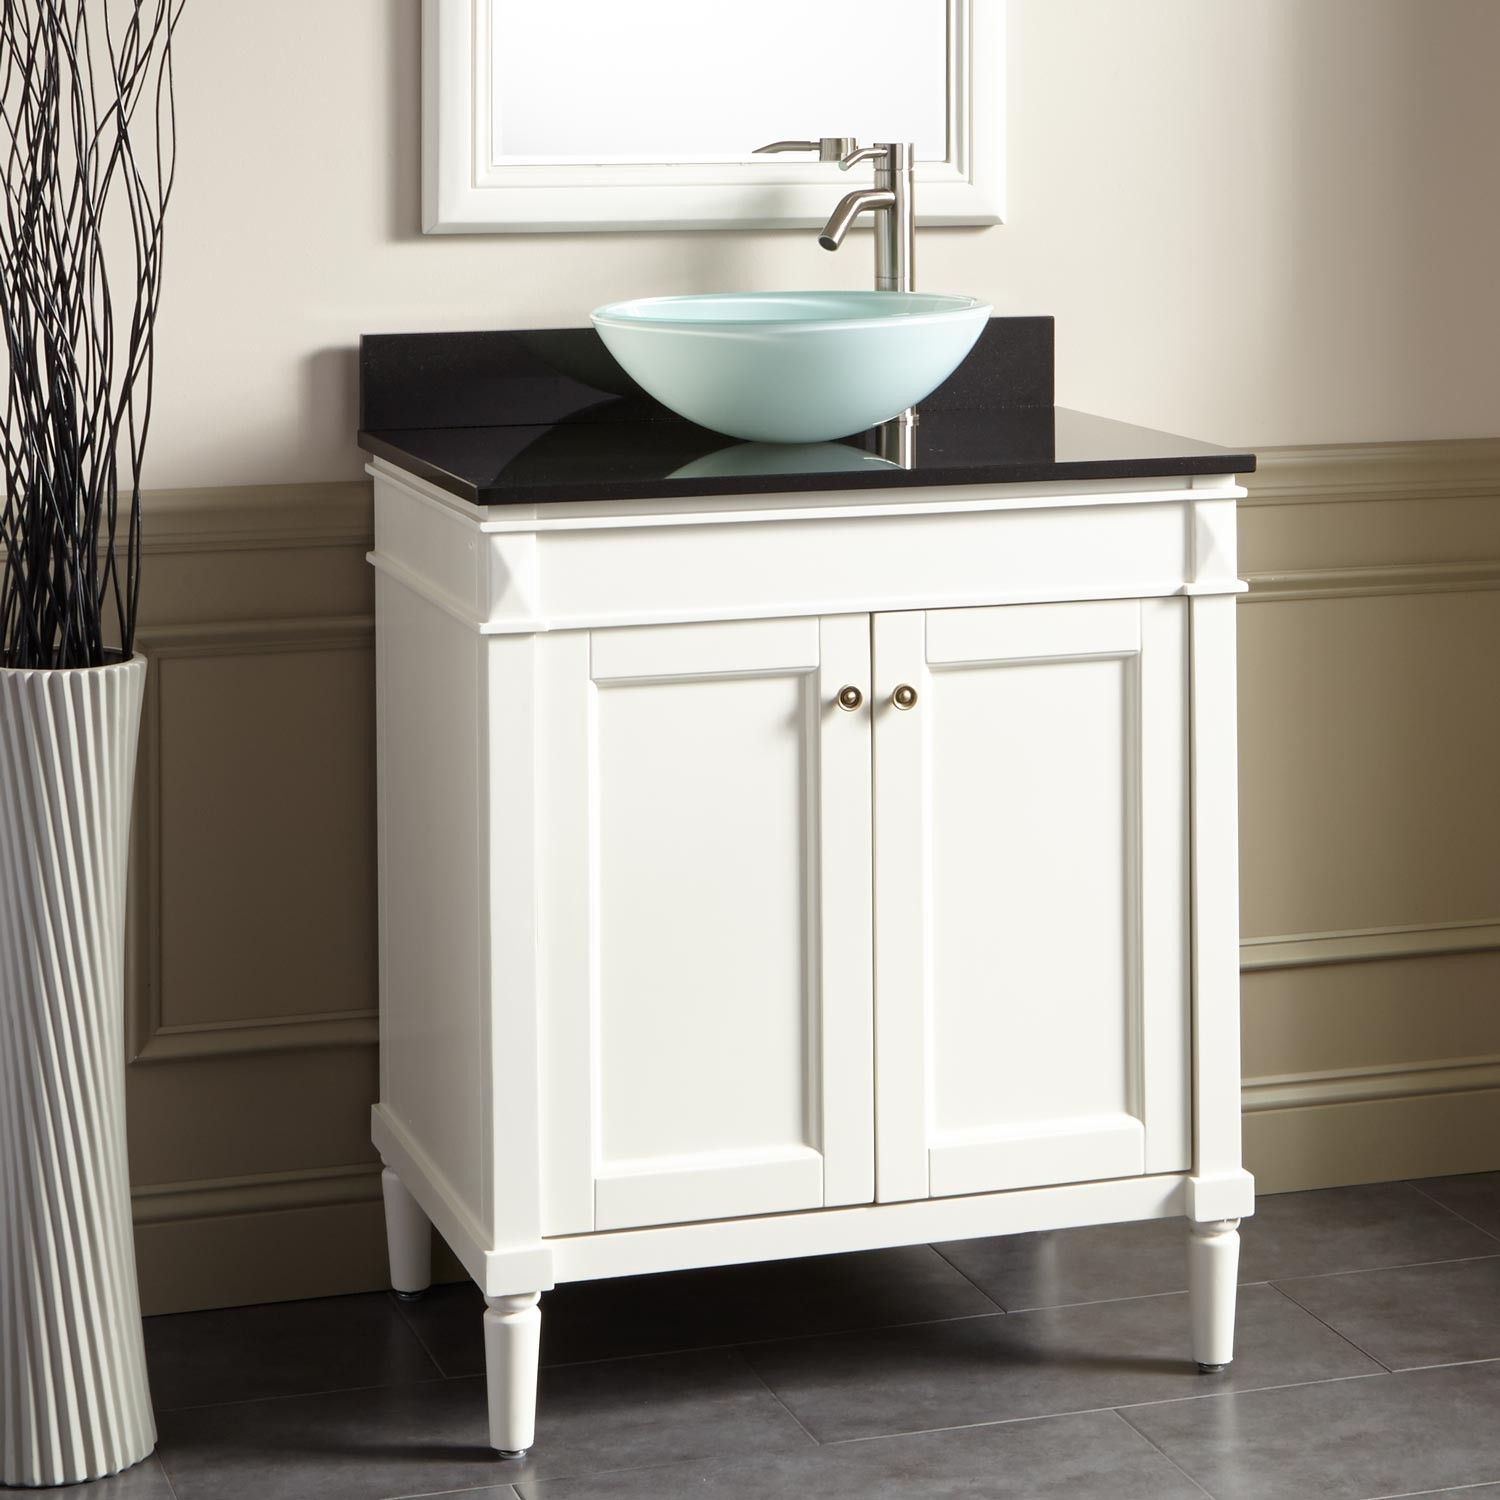 Inspirational Small Bathroom Vanity Cabinet and Sink